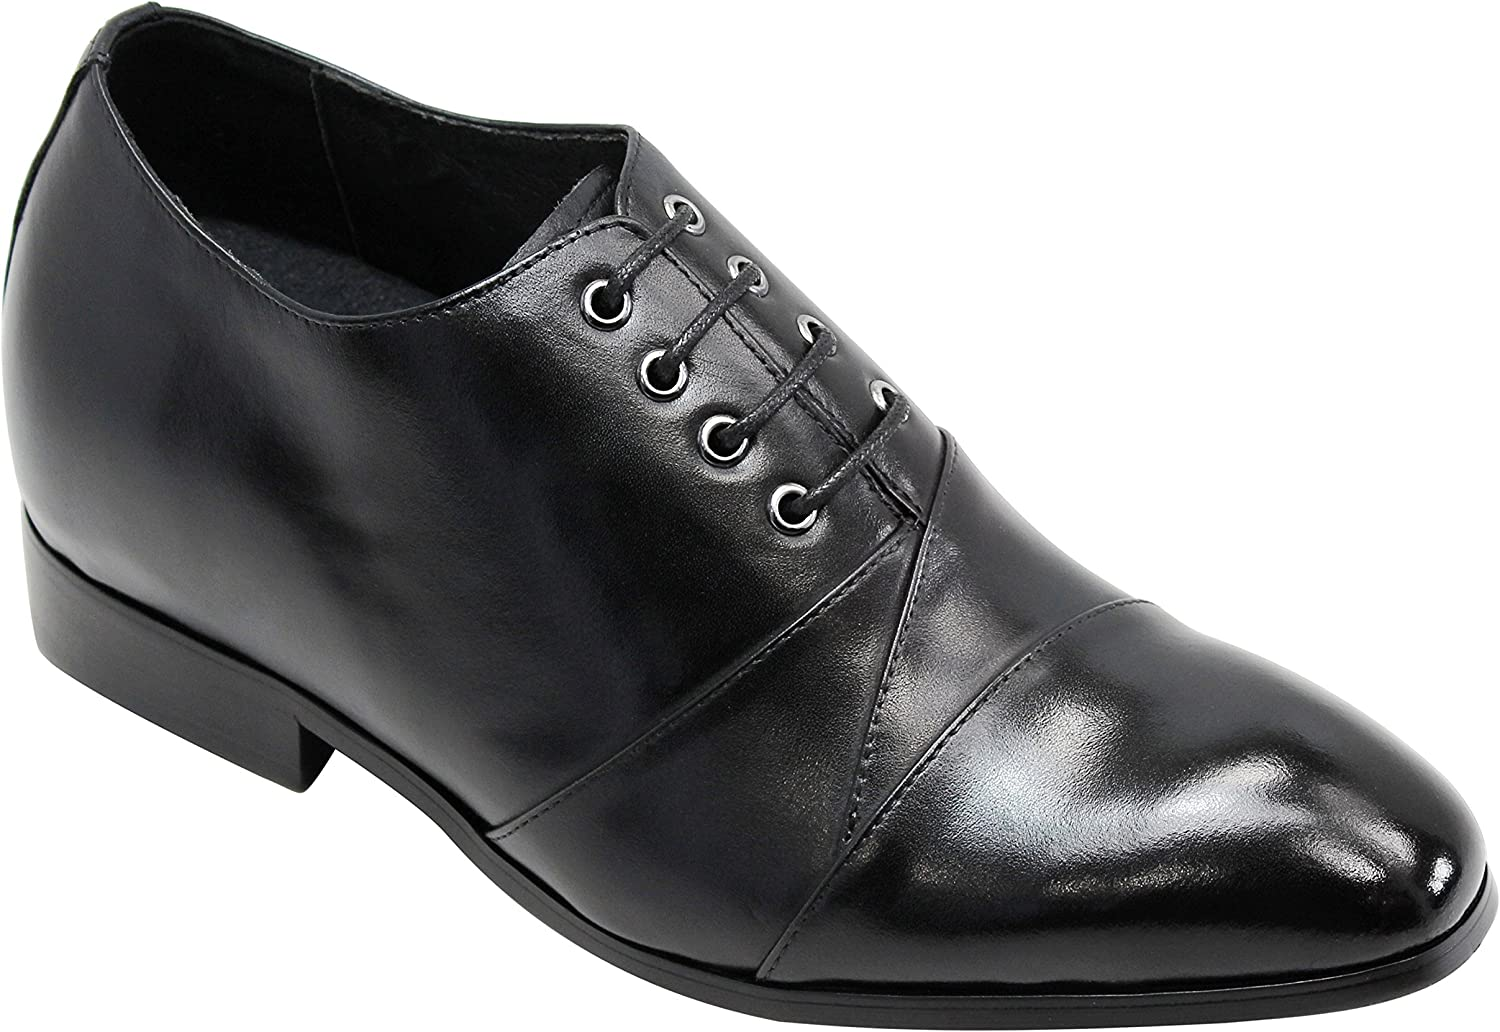 Calden Men's Invisible Height Increasing Elevator Shoes - Black Premium Leather Super Lightweight Lace-up Faux Leather Bottom Formal Oxfords - 2.6 Inches Taller - K323041